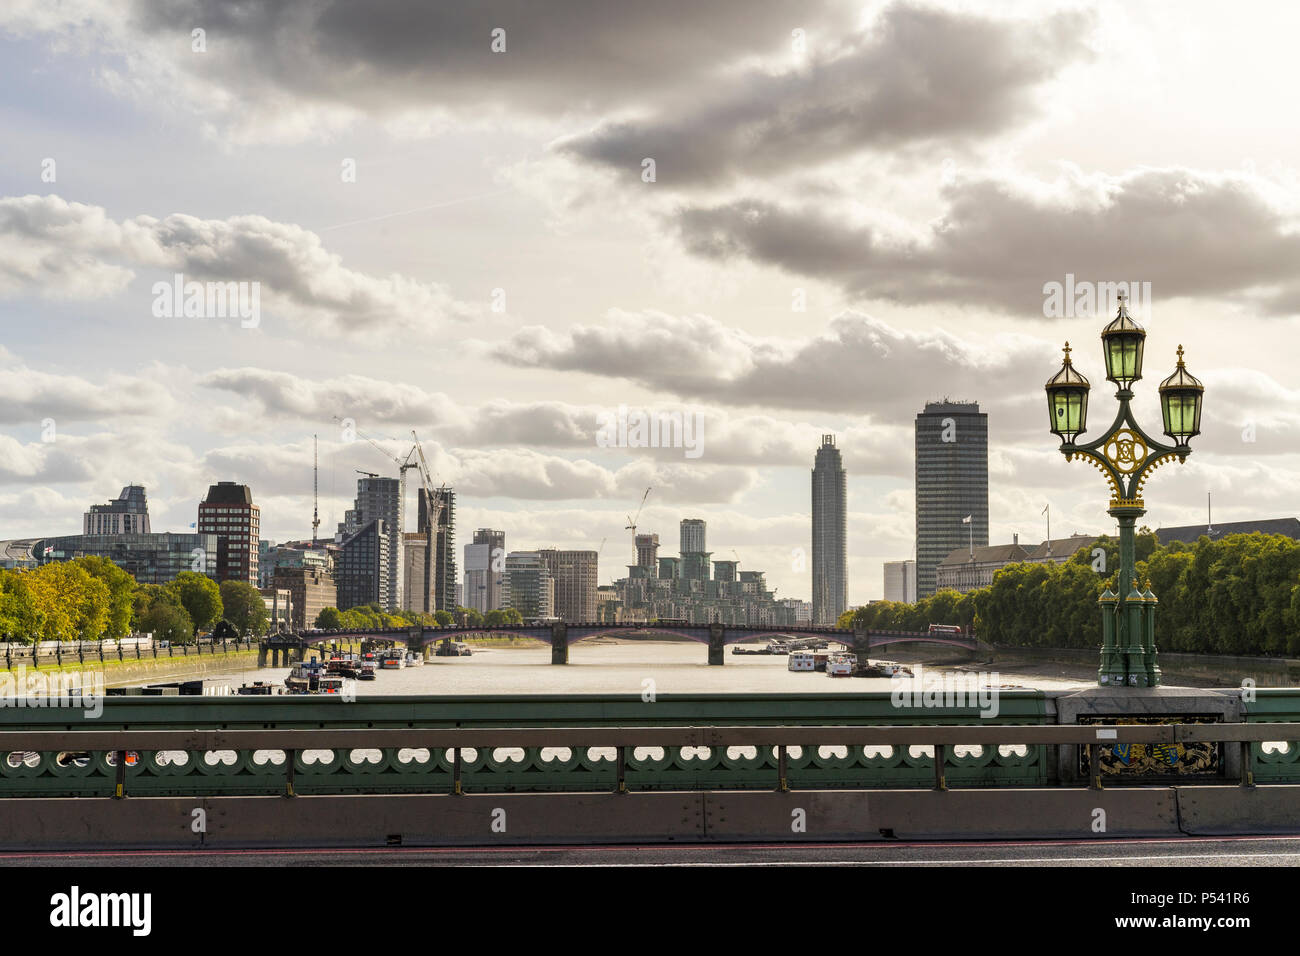 London Great Britain, October 12 2017, Sunny autumn day in the beautiful city, Nice architecture of buildings and bridges - Stock Image